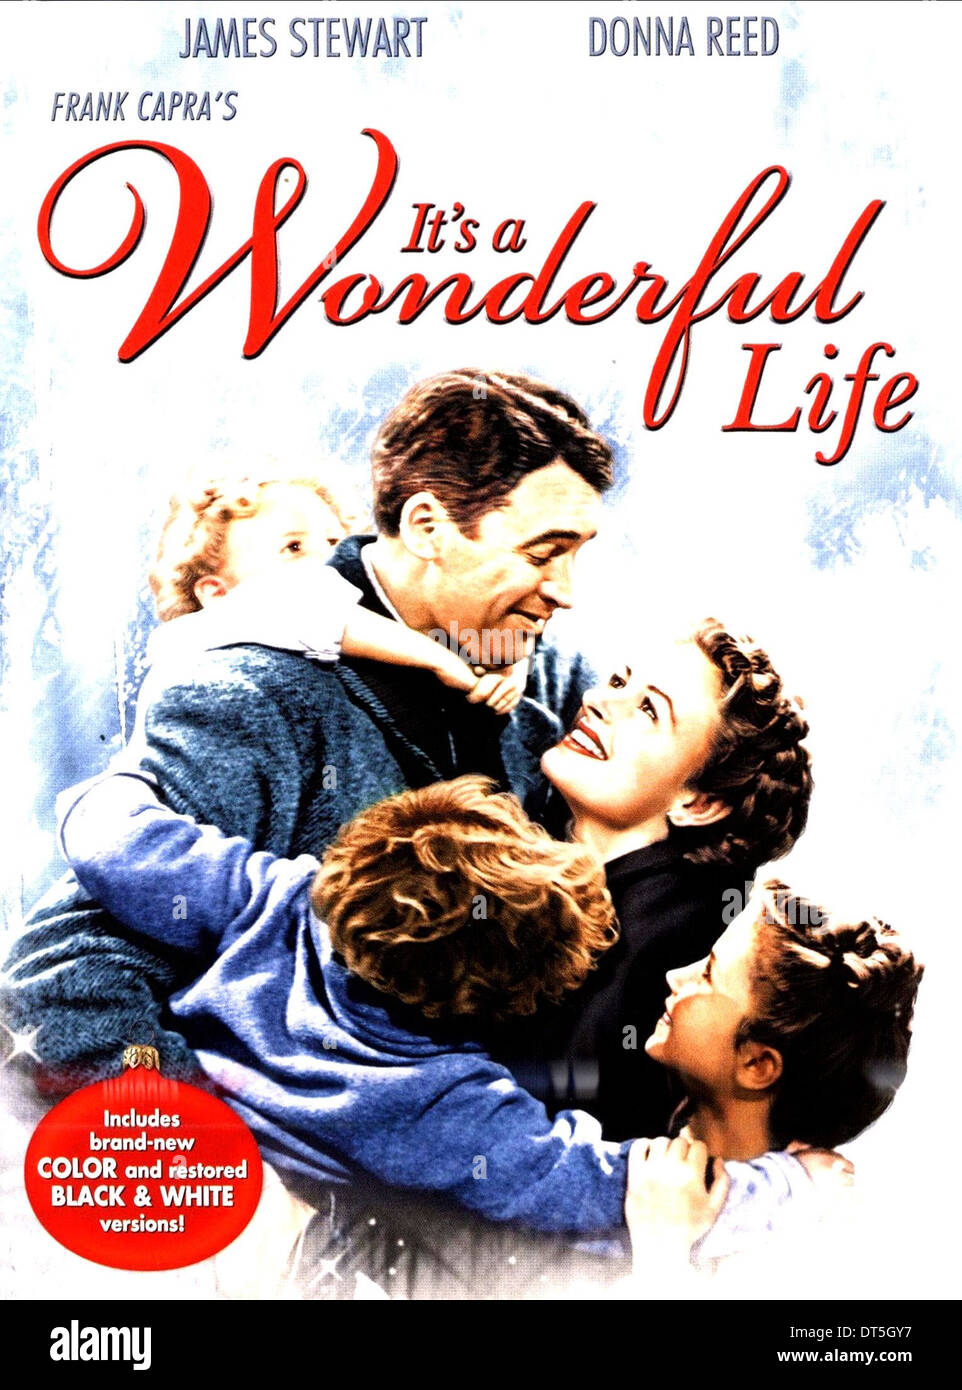 James Stewart Donna Reed Poster It 39 S A Wonderful Life 1946 Stock Photo Royalty Free Image